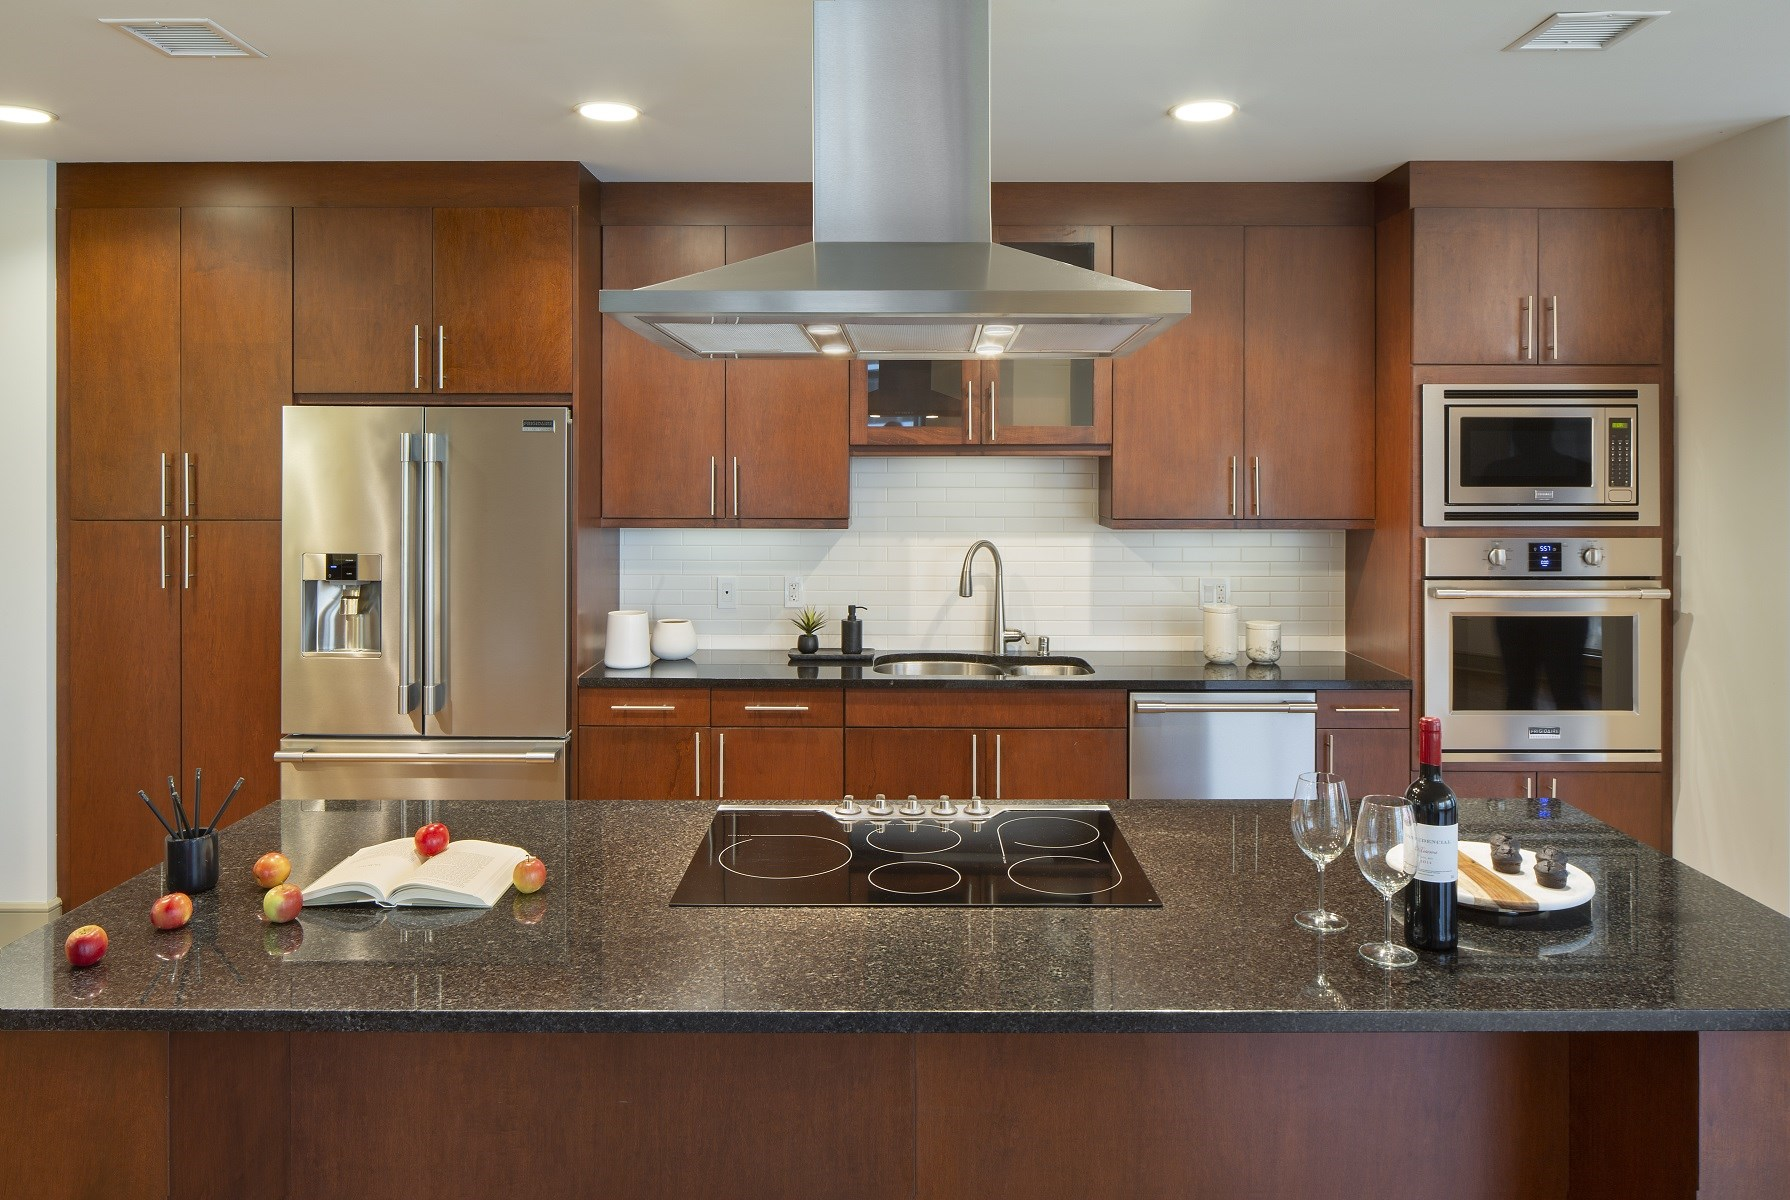 Westwood-Luxury-Apartments-Wilshire-Victoria-Unit-502-Luxury-Kitchen-With-Island-Granite-Countertops-Upgraded-Appliances